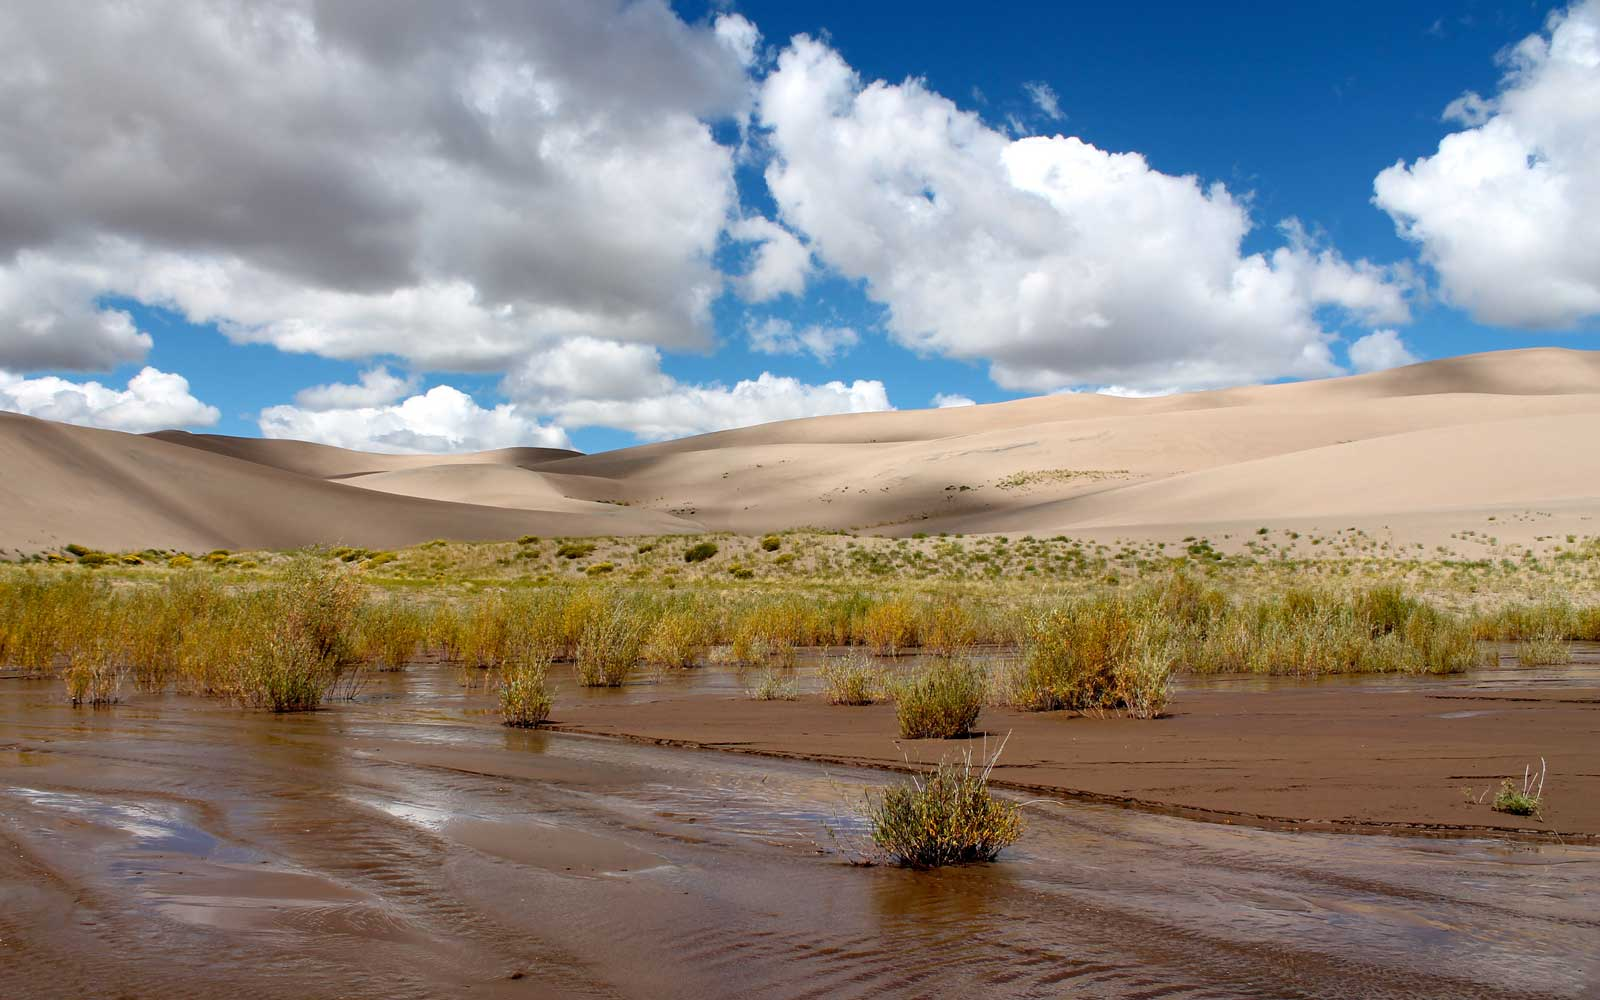 Explore a natural waterslide that arrives to Great Sand Dunes National Park each summer.